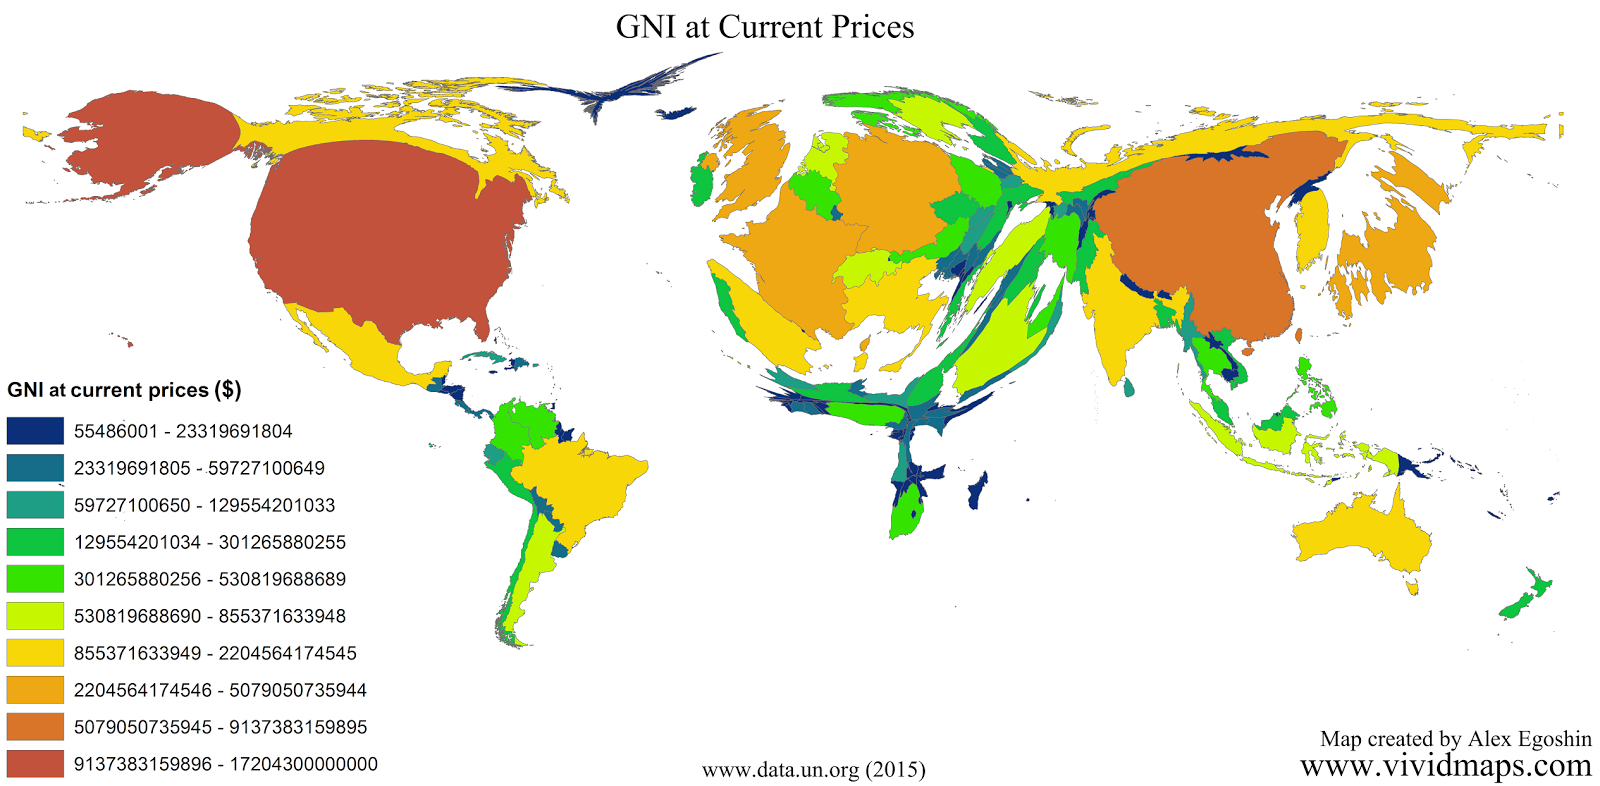 Gross national income at Current Prices (US dollars)